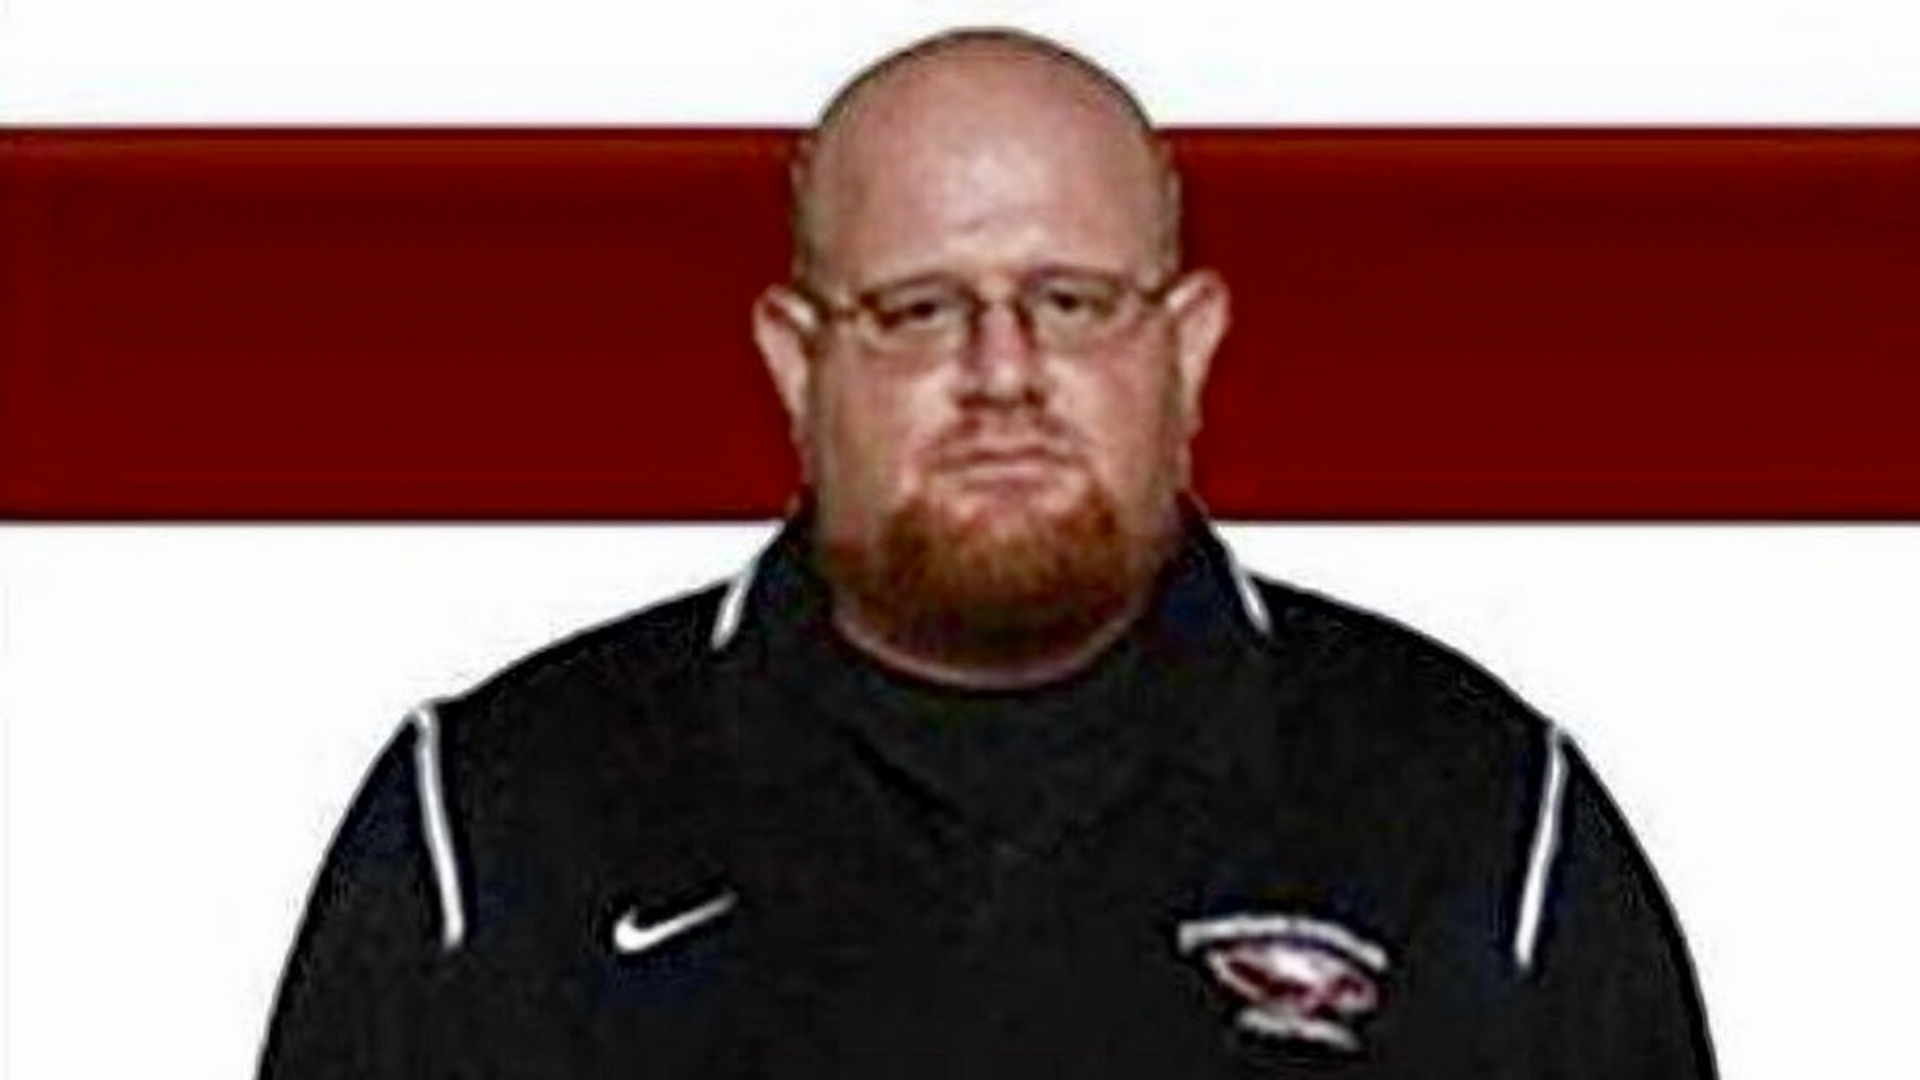 Aaron Feis is seen in an image posted to the @MSDEagles Twitter page.